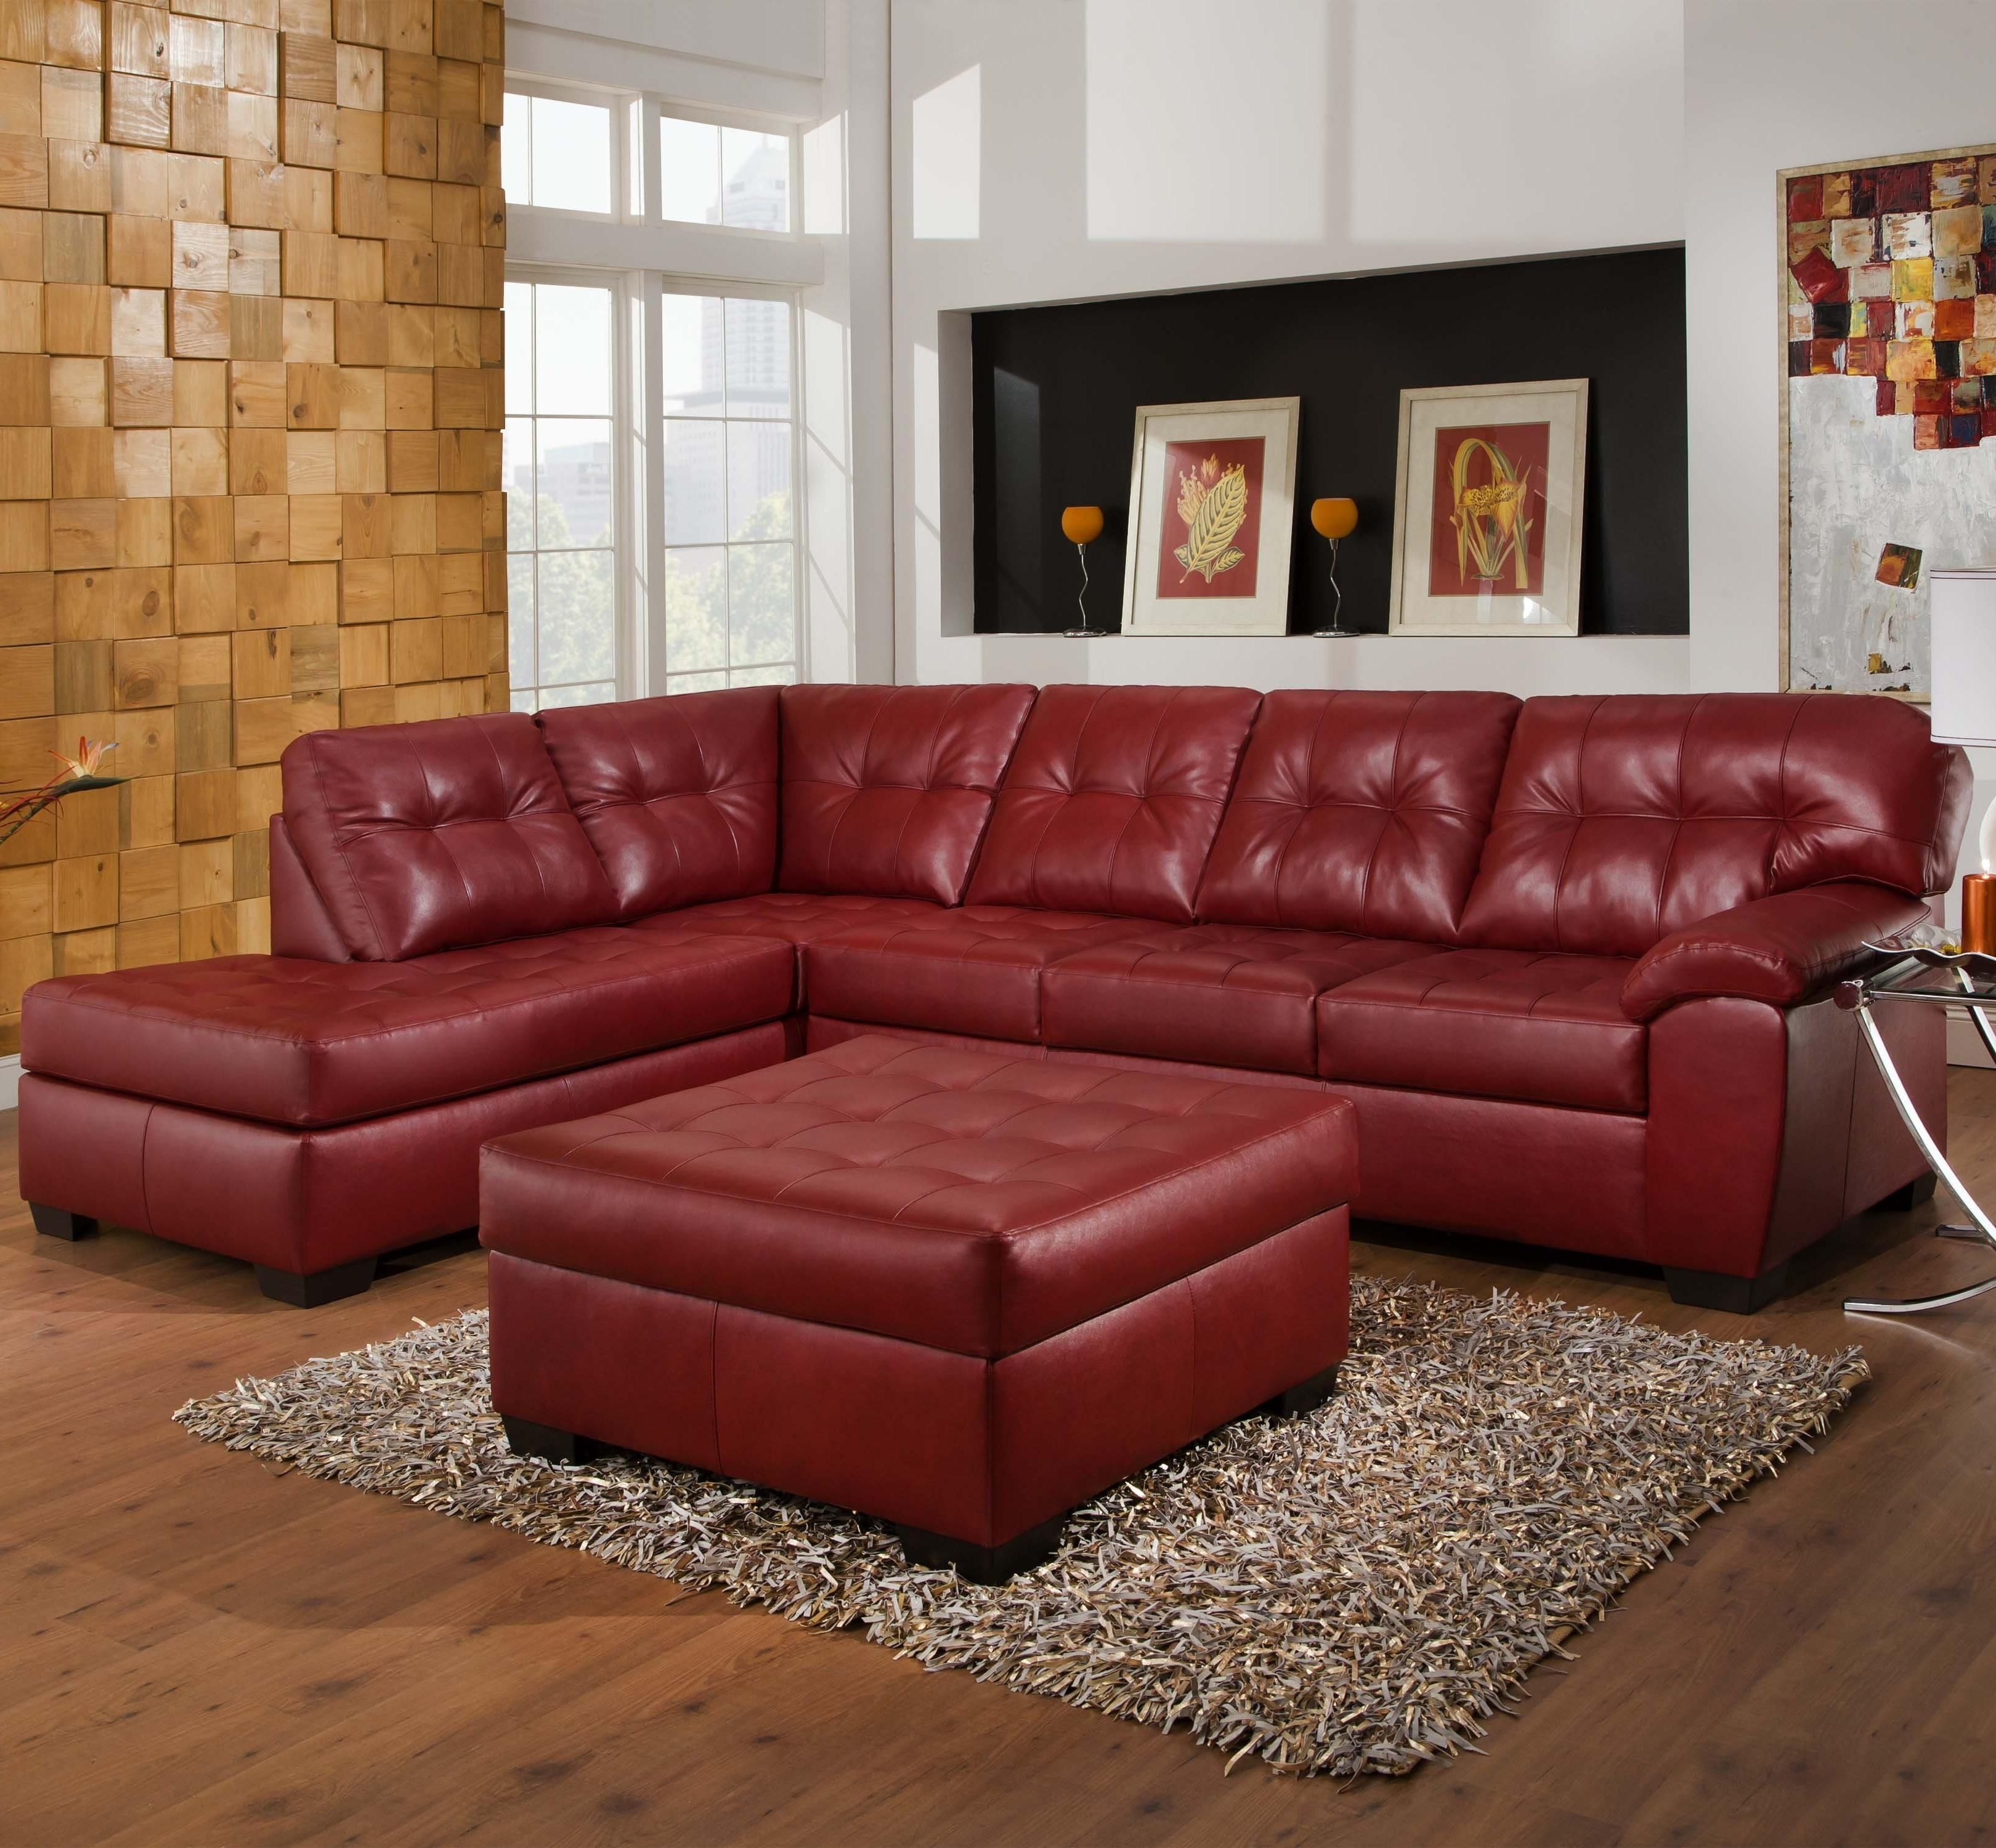 Best And Newest Knoxville Tn Sectional Sofas For 9569 2 Piece Sectional With Tufted Seats & Backsimmons (View 5 of 15)